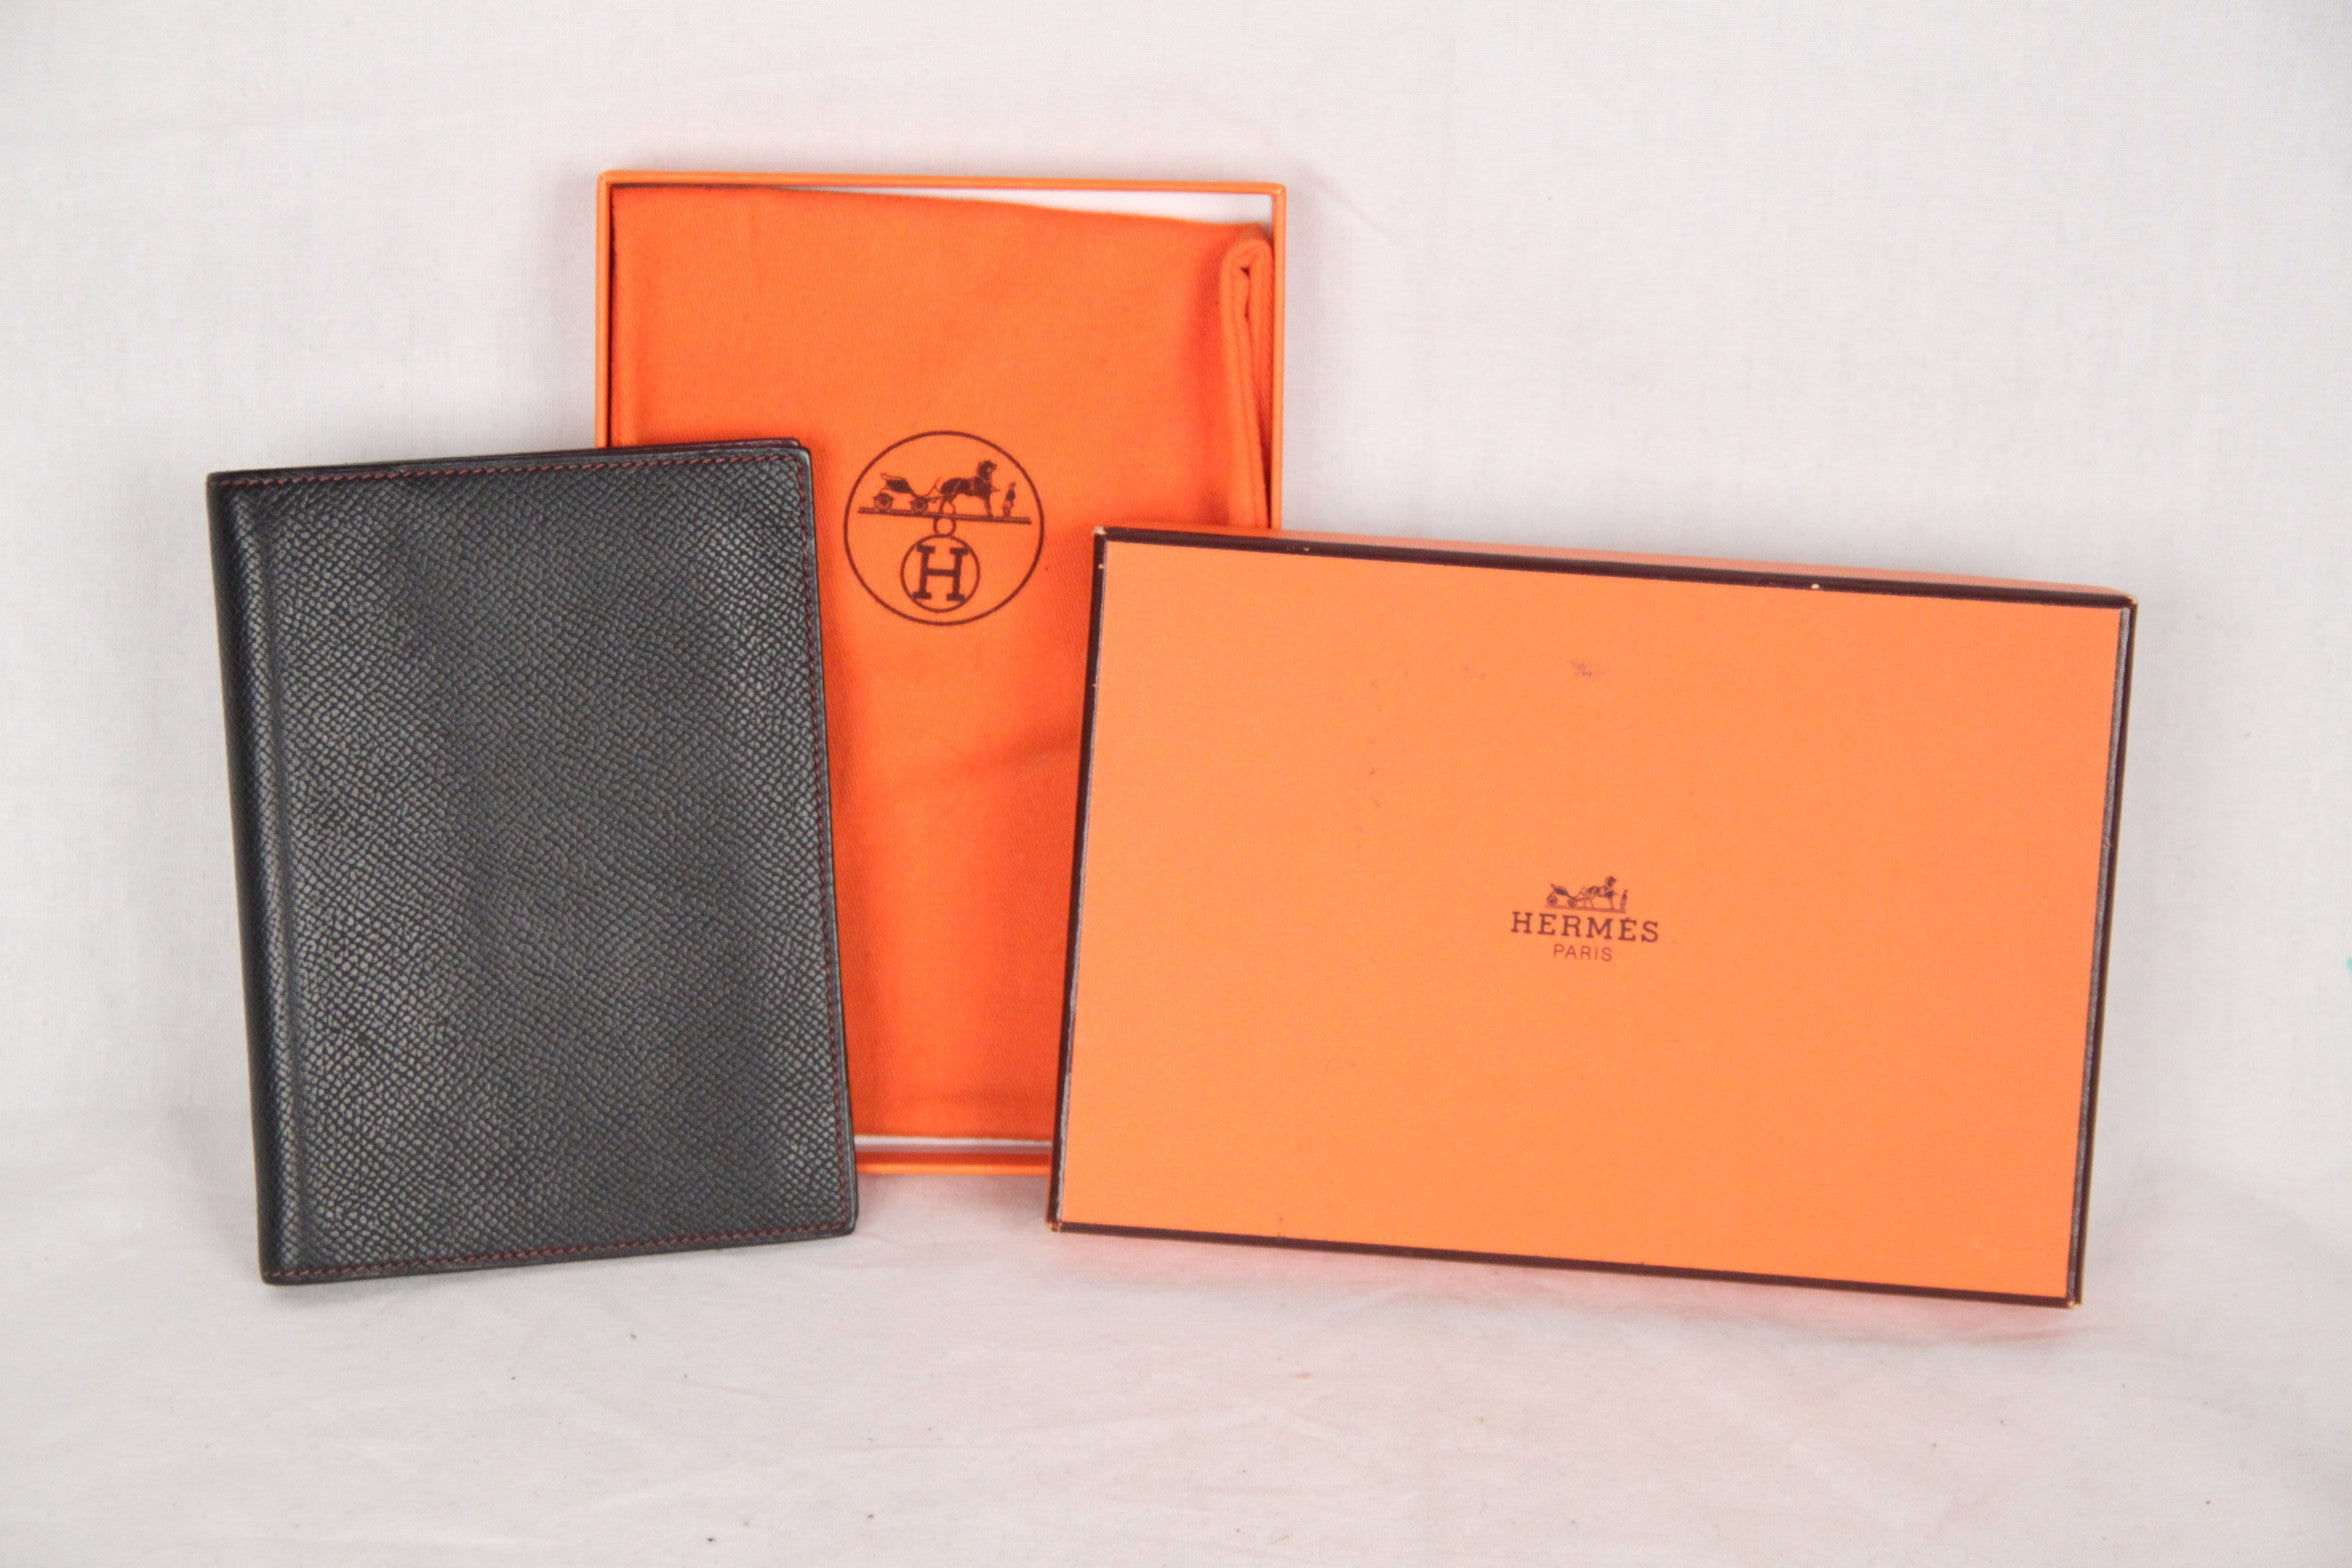 33ac199a6c617 HERMES Black Leather AGENDA COVER Day Planner ORGANIZER at 1stdibs